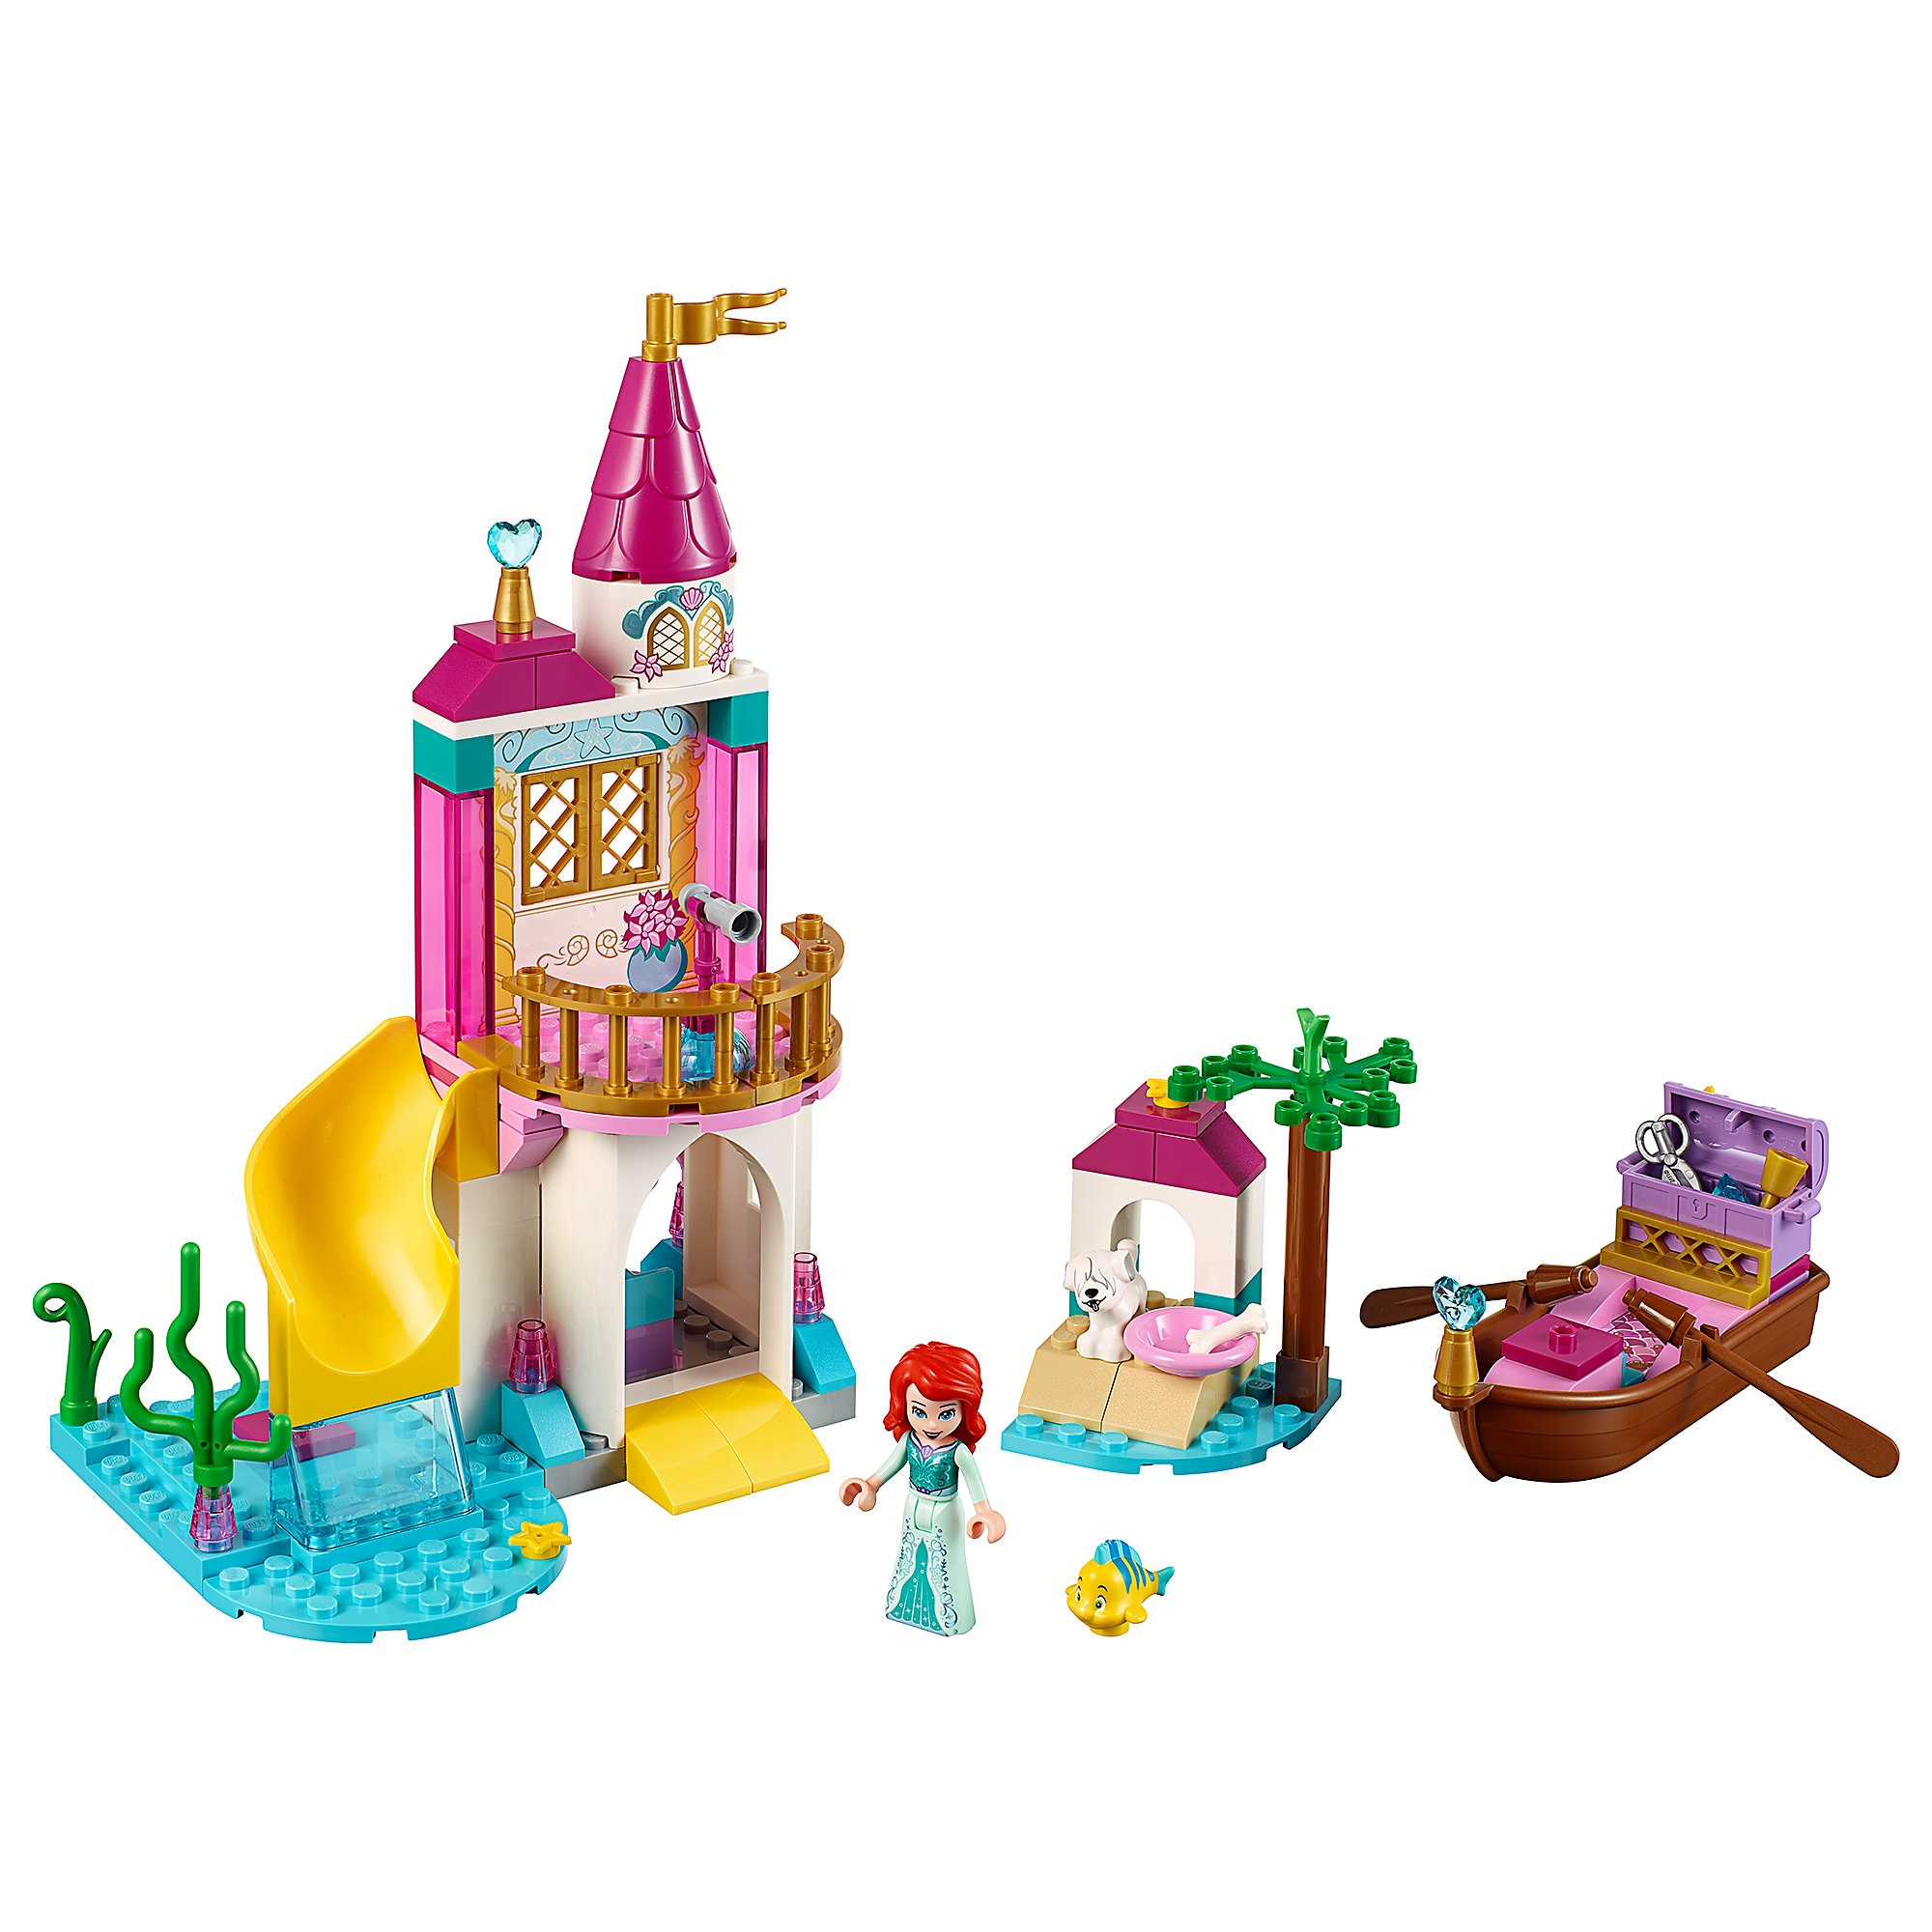 Ariel's Seaside Castle Playset by LEGO Official shopDisney